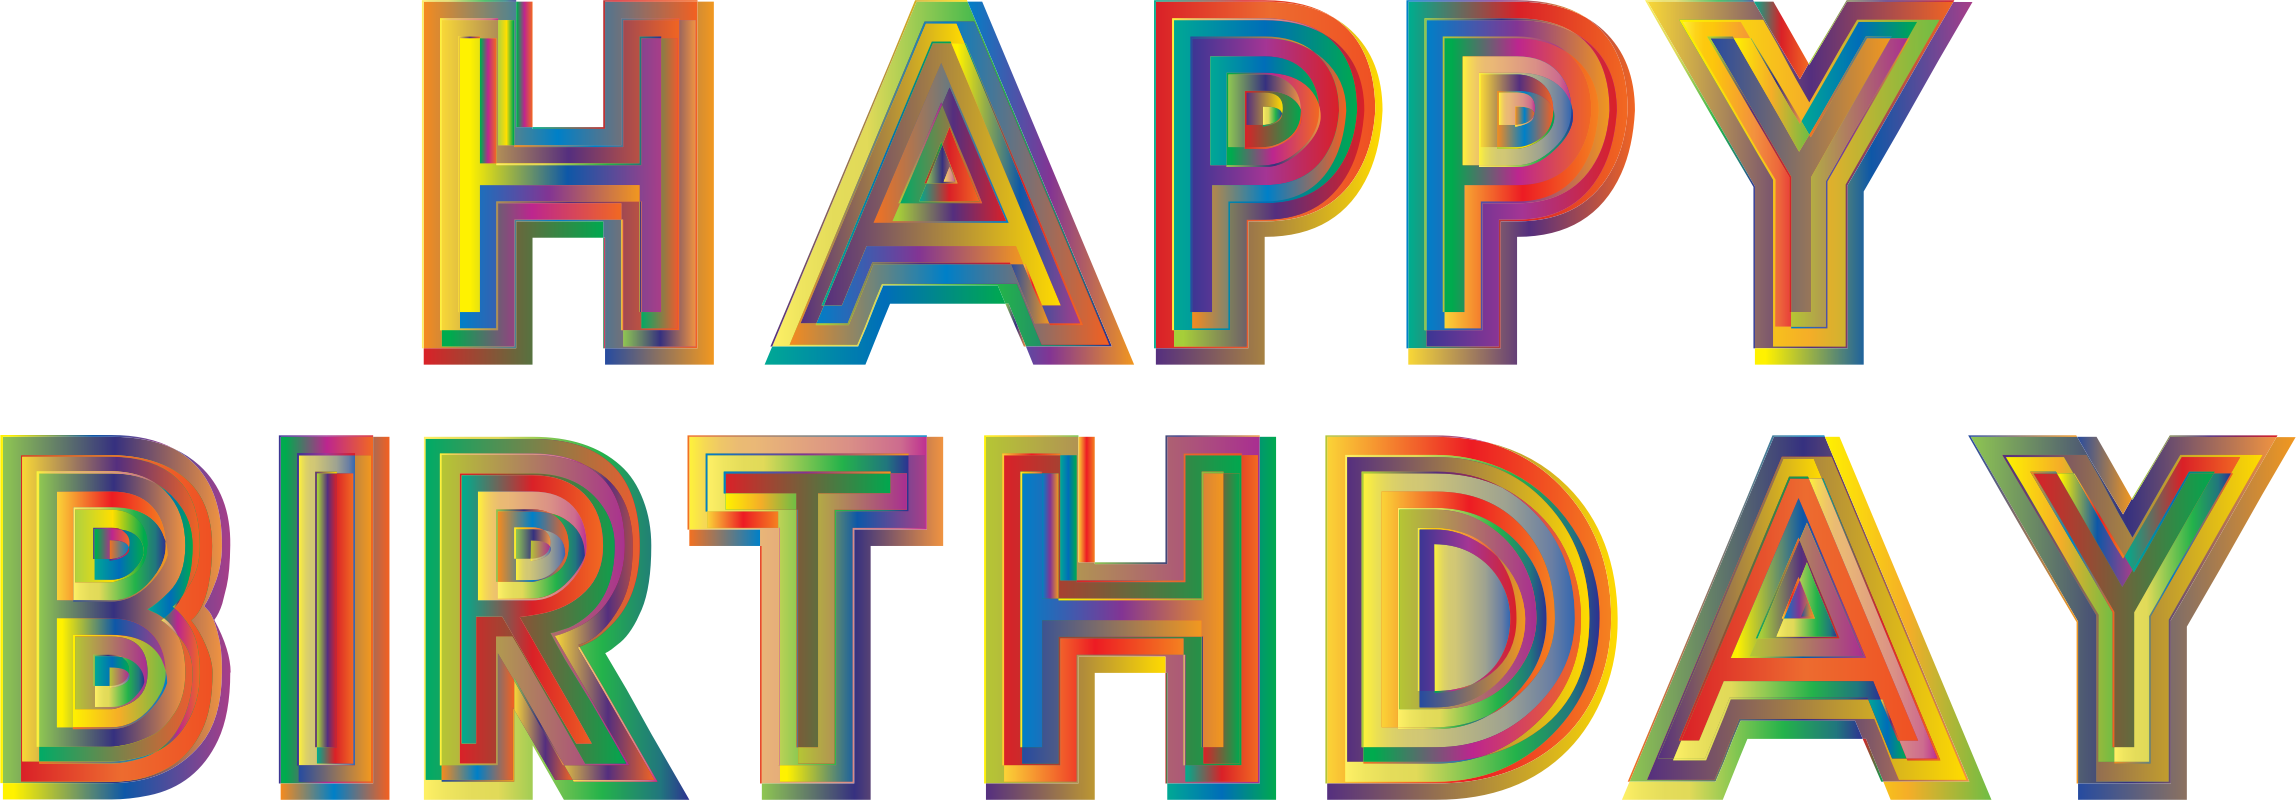 Happy birthday typography by. Future clipart future enhancement